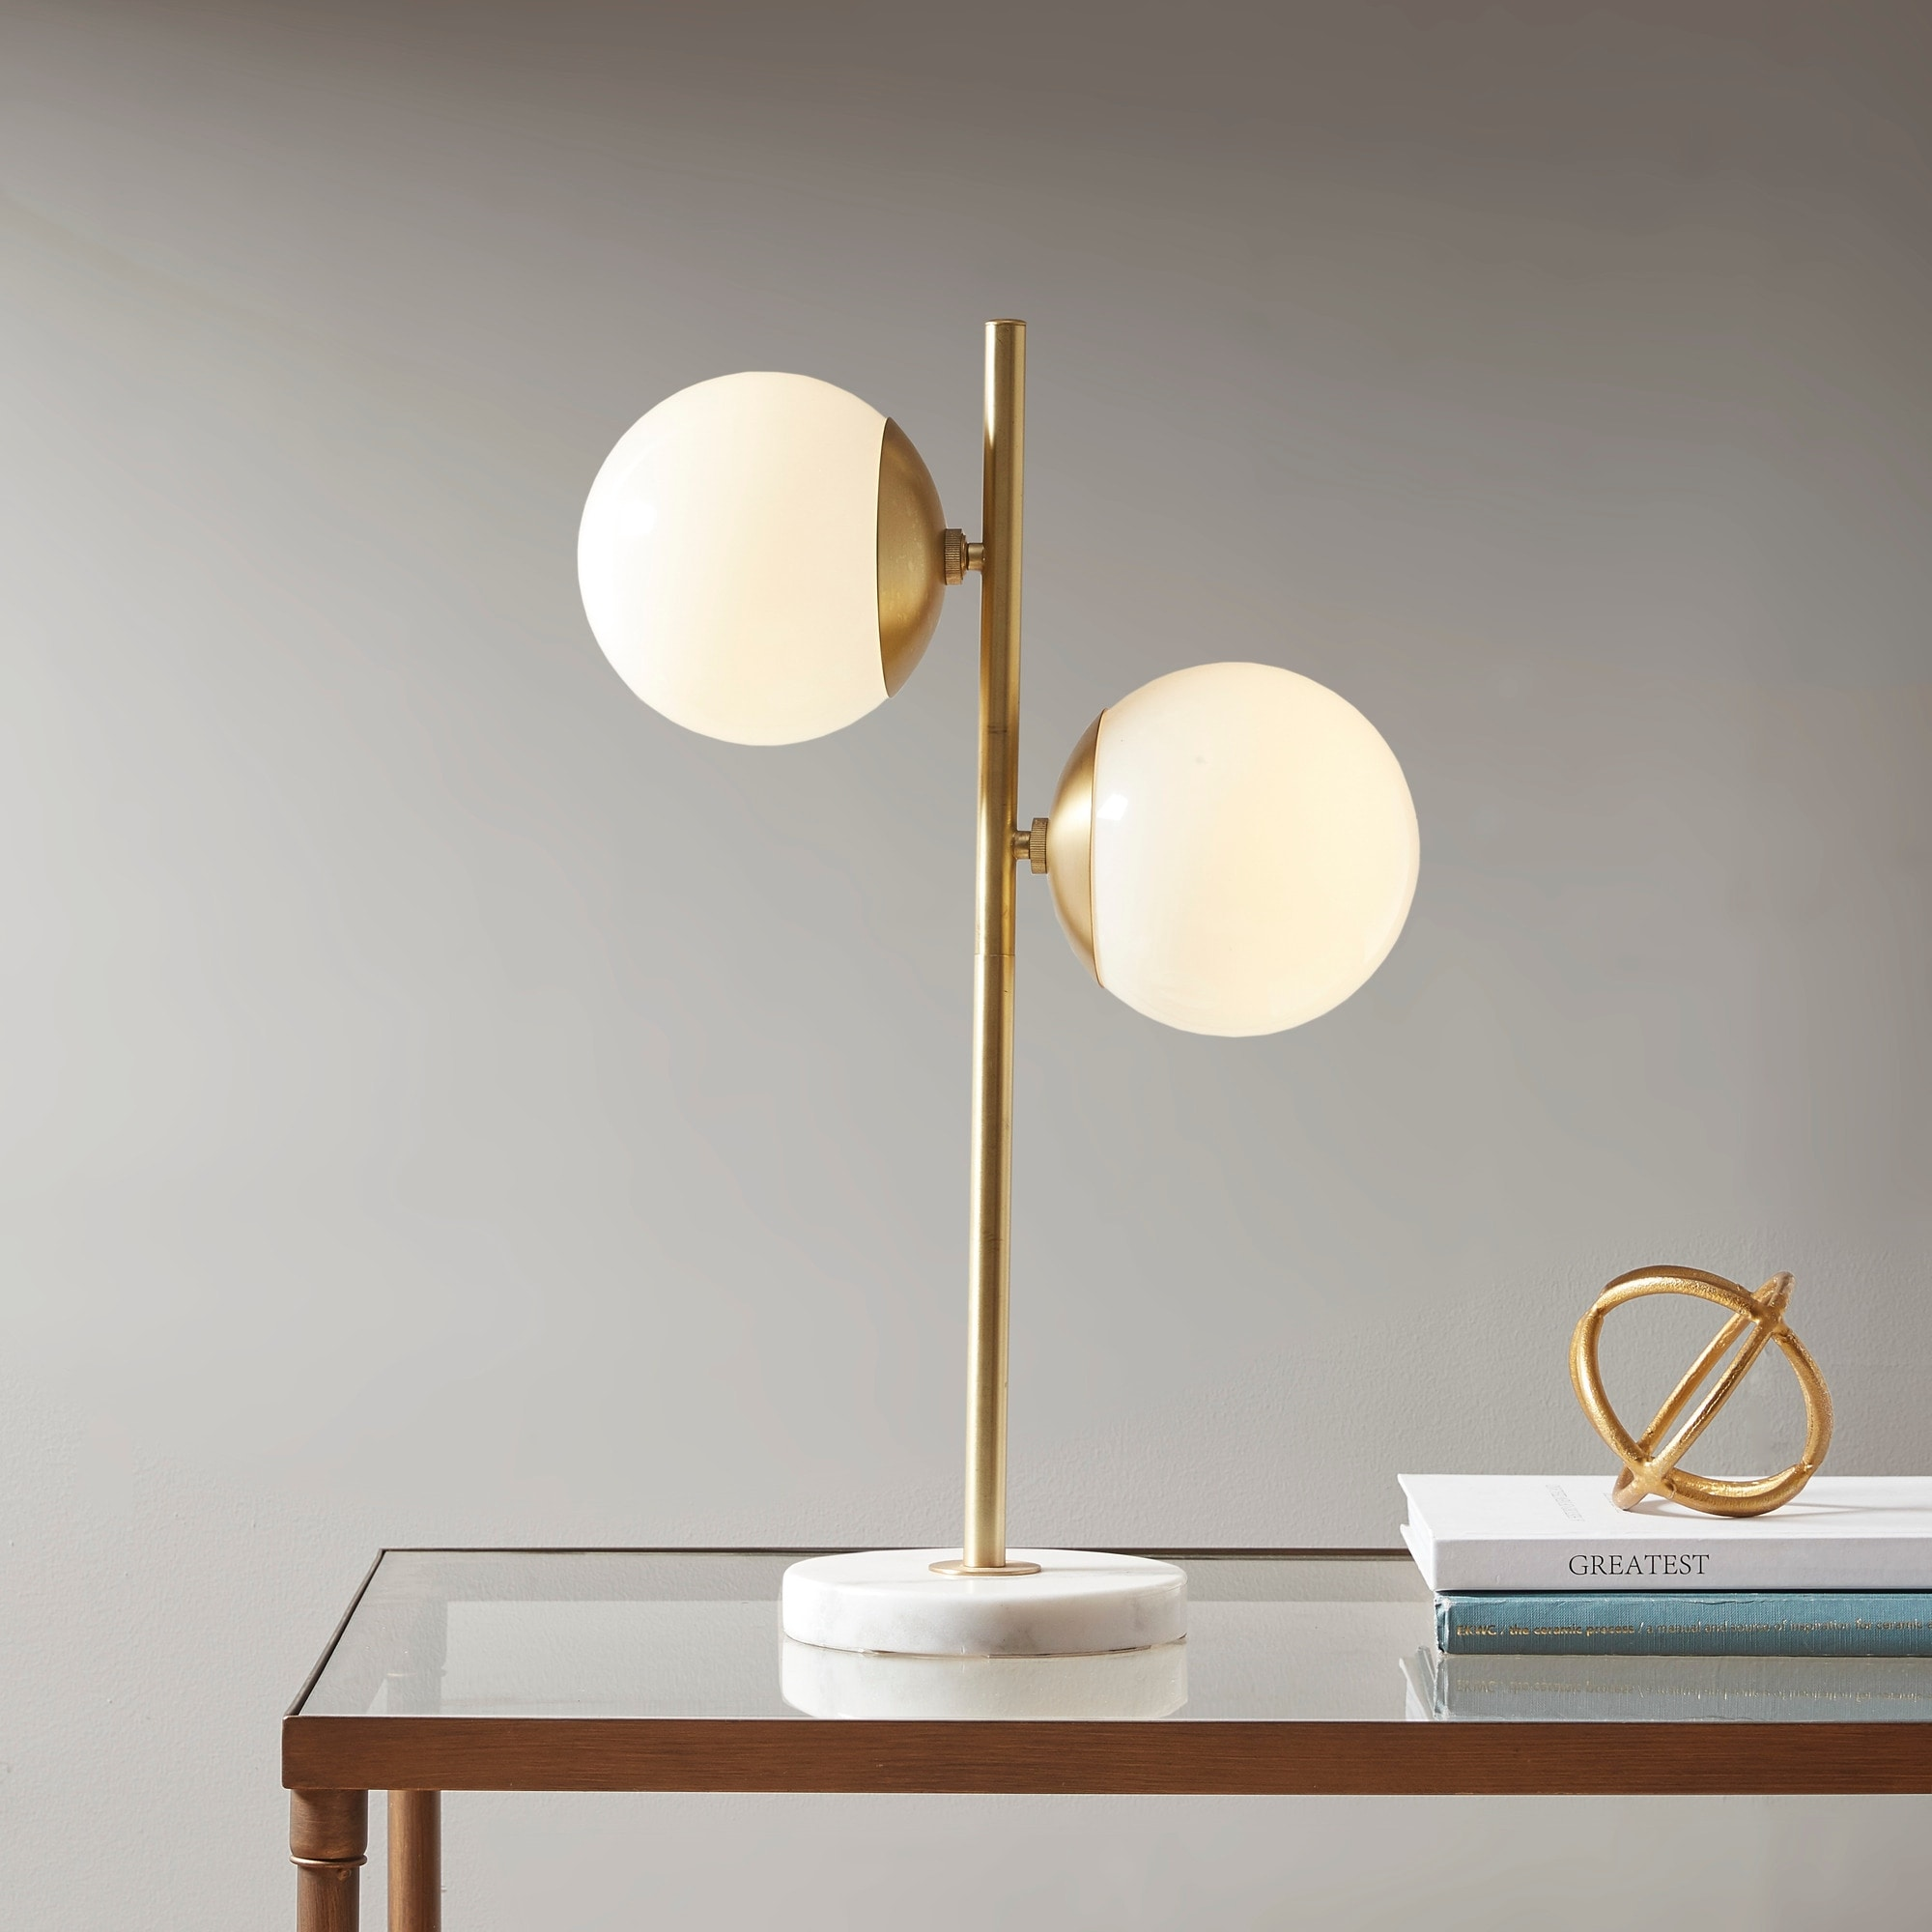 Holloway Table Lamp With White Round Shade By Ink Ivy N A On Sale Overstock 19429587 Gold